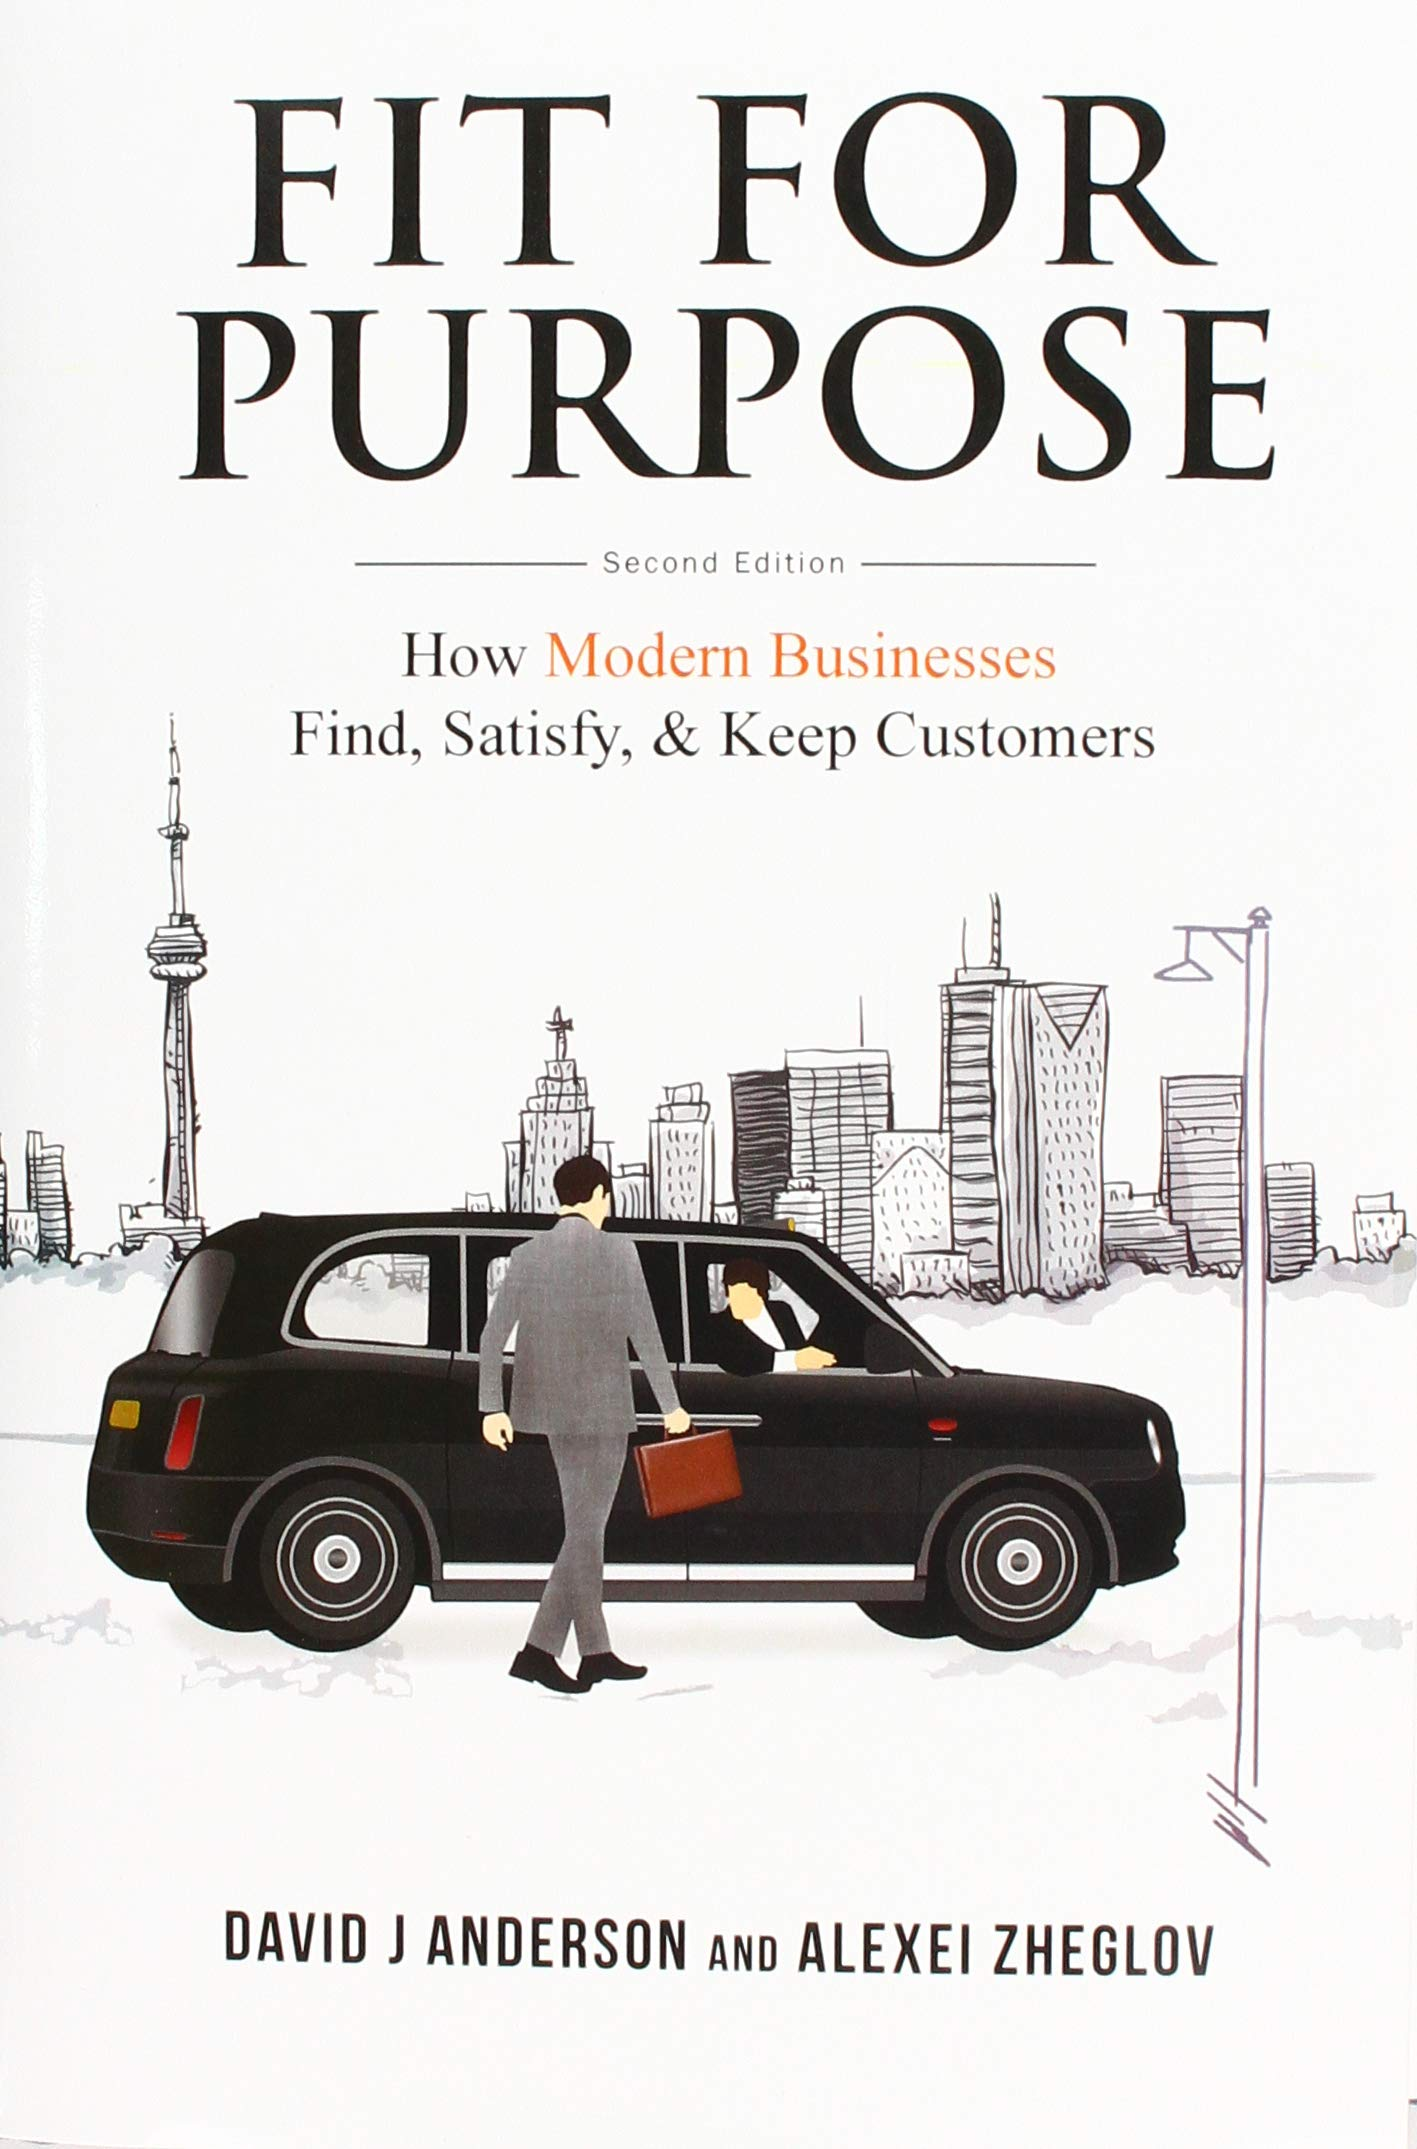 Fit for Purpose: How Modern Businesses Find, Satisfy, & Keep Customers (Inglese) Copertina rigida – 20 set 2018 David J. Anderson Alexei Zheglov BLUE HOLE PR 1732821208